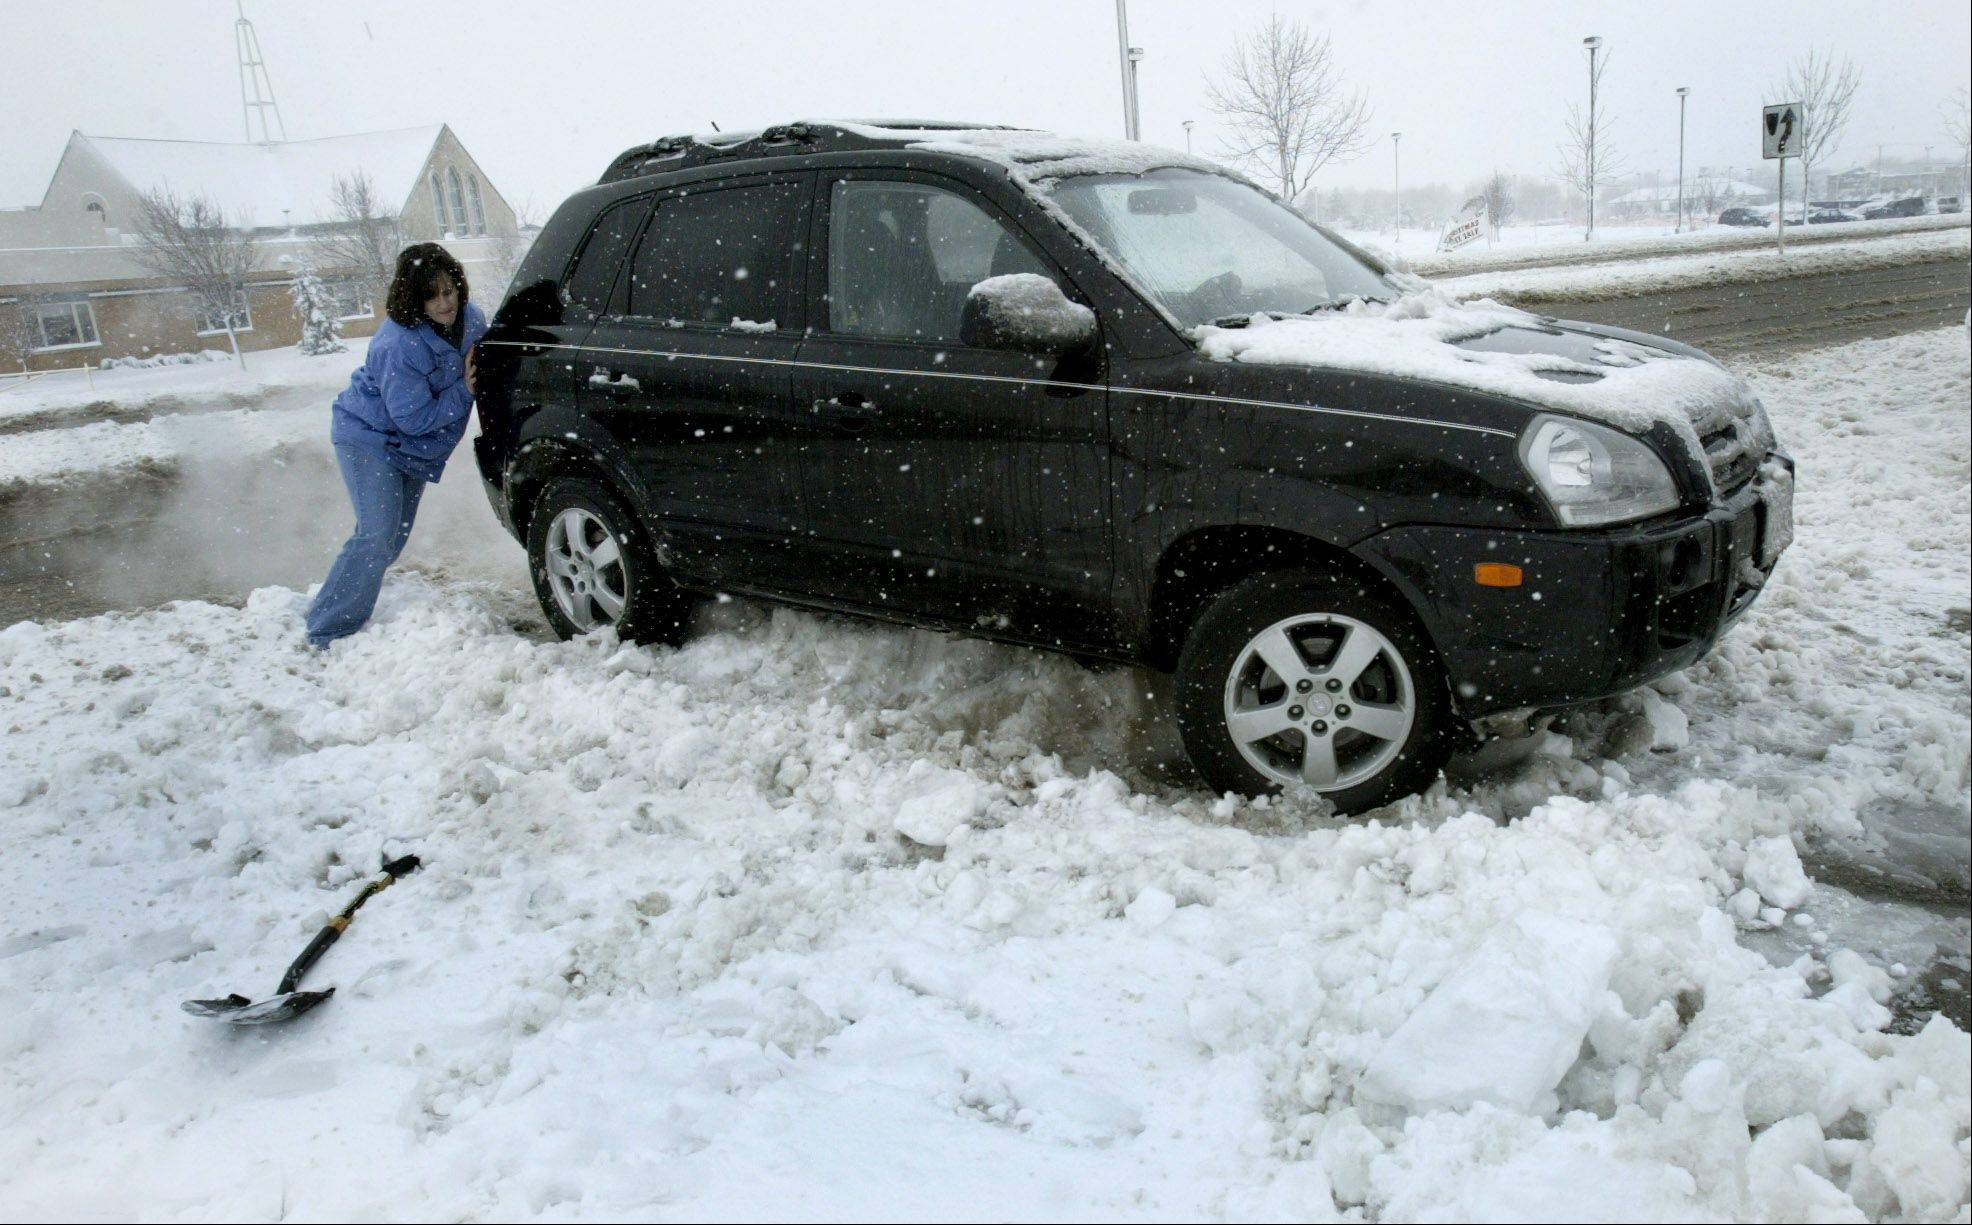 Across the suburbs last week, cars got stuck in snow and fishtailed on icy streets.